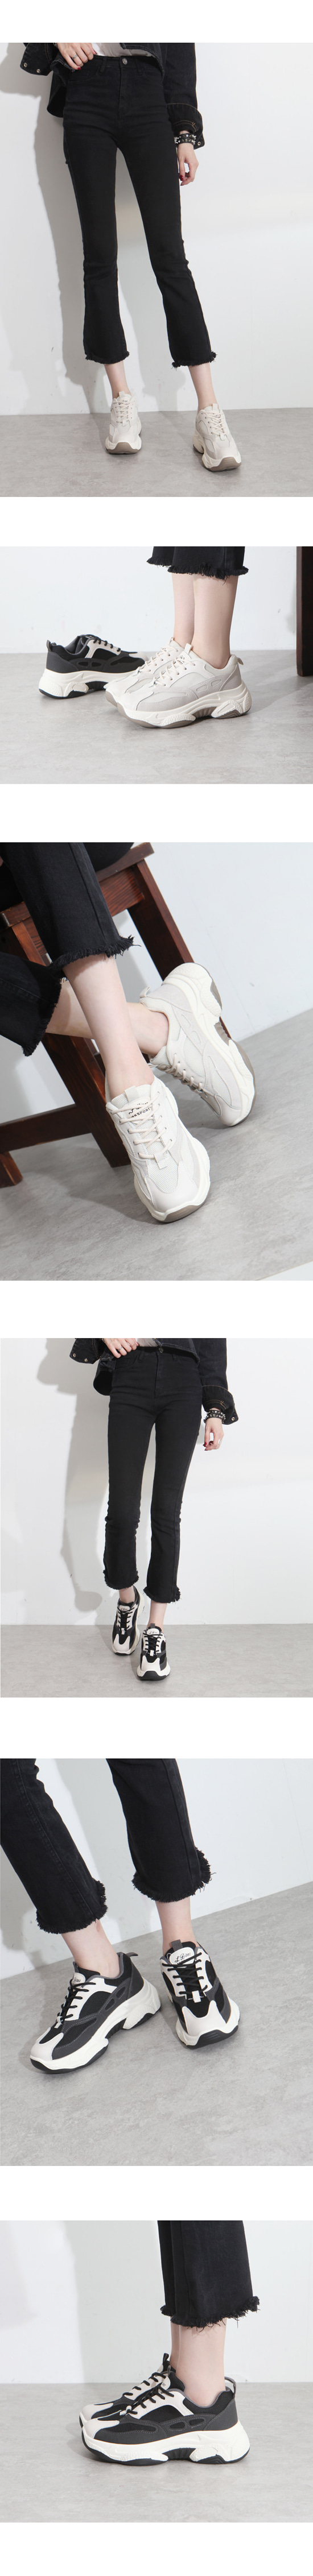 Mesh Ugly Shoes Sneakers 5cm Black